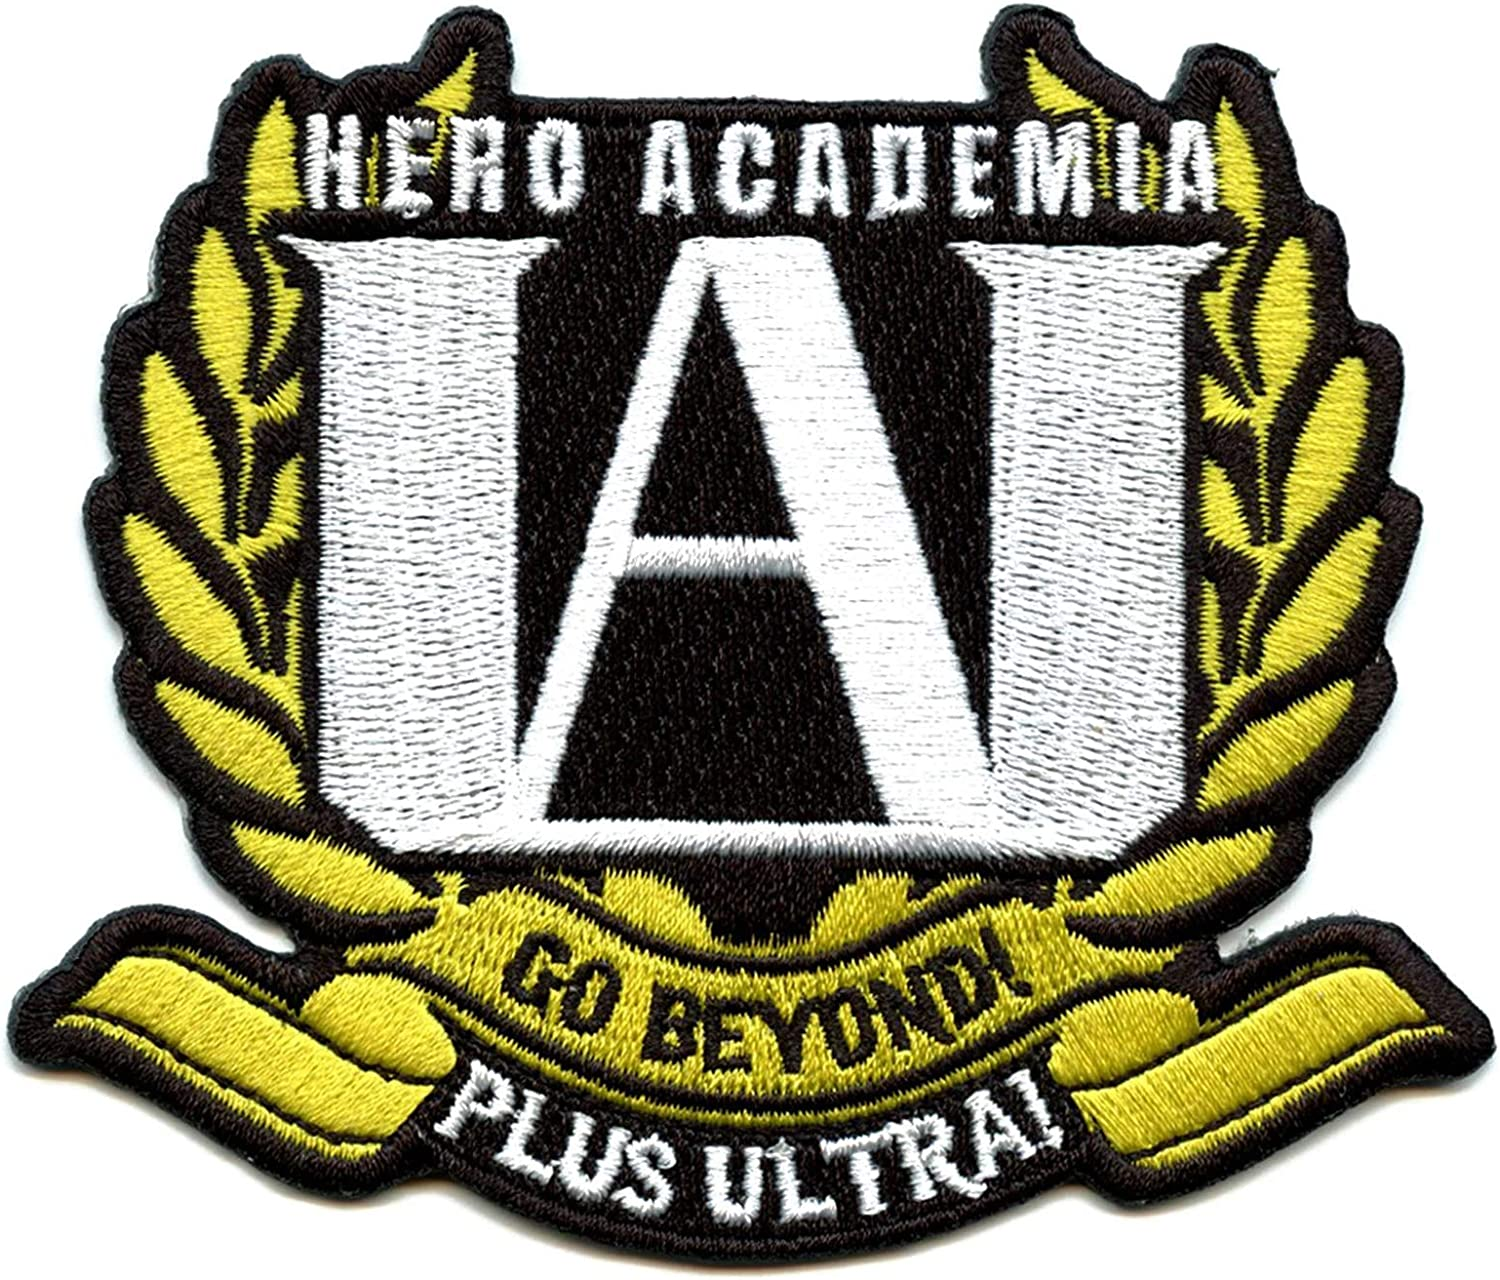 Amazon Com My Hero Academia Anime Hero Academia Ua Go Beyond Plus Ultra Patch Officially Licensed Arts Crafts Sewing Kup 25 naszych najpopularniejszych produktów o najlepszej wartości 1. my hero academia anime hero academia ua go beyond plus ultra patch officially licensed